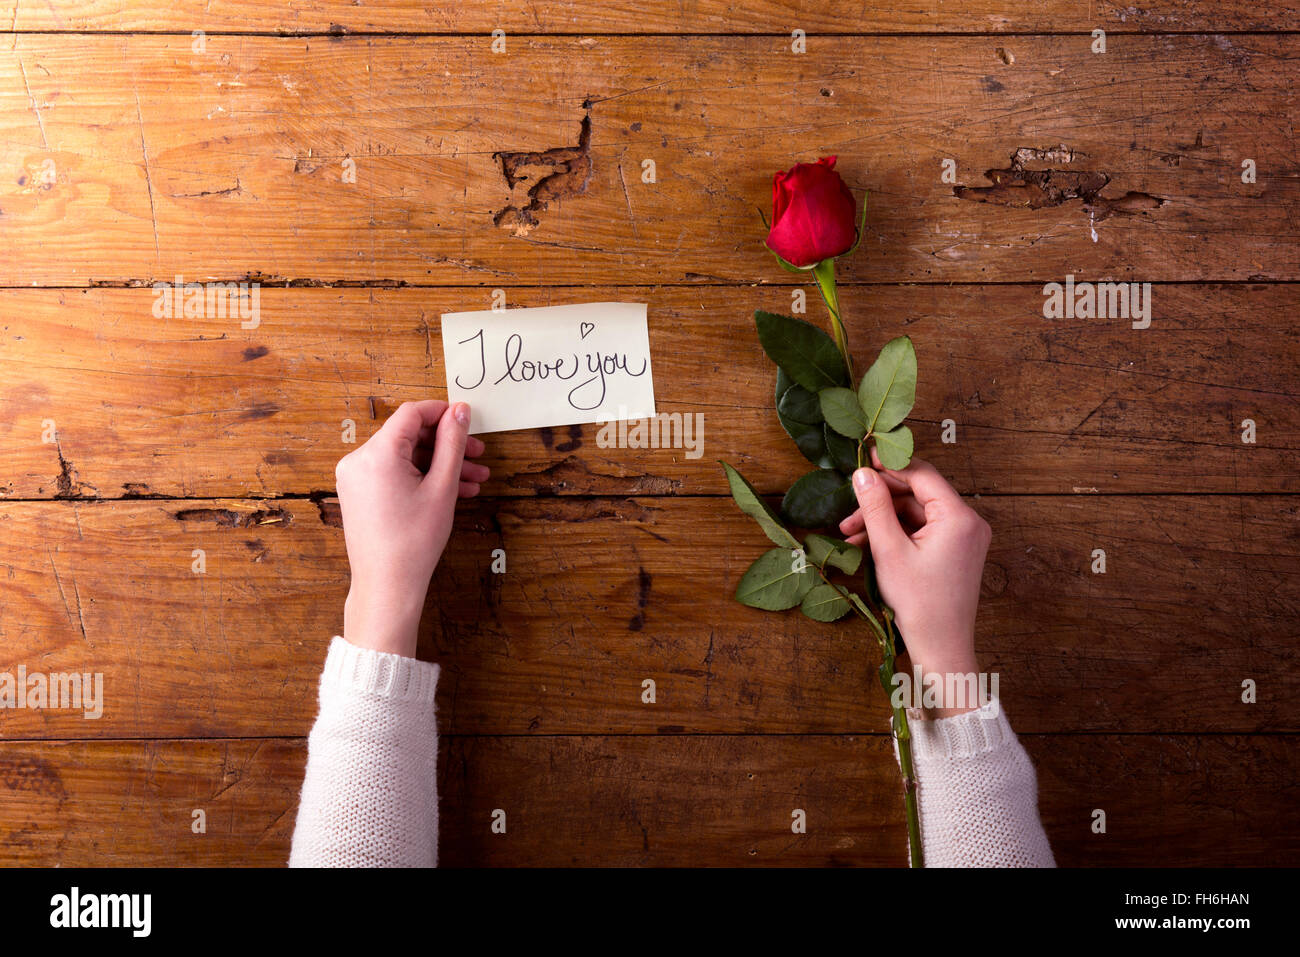 Woman's hands holding red rose and a notice 'I Love You' - Stock Image